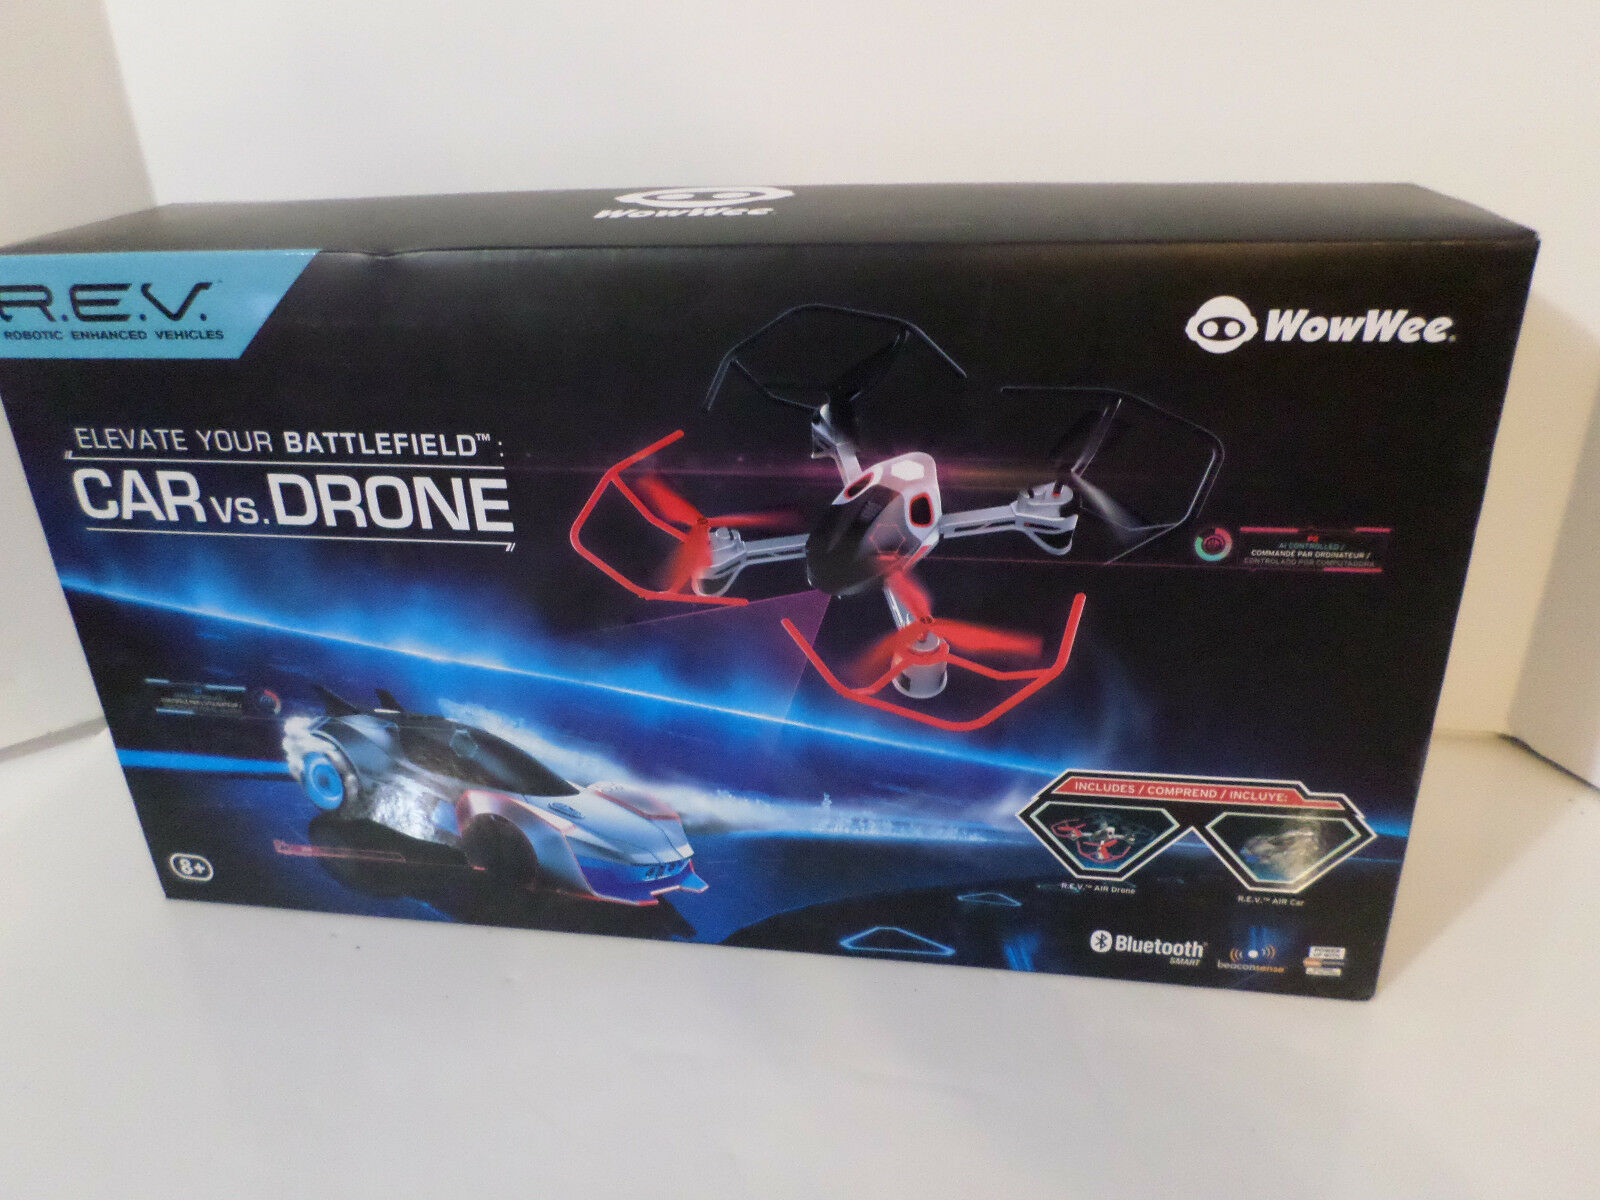 WowWee Robotic Enhanced Vehicle REV Air Car vs. Drone New in Box